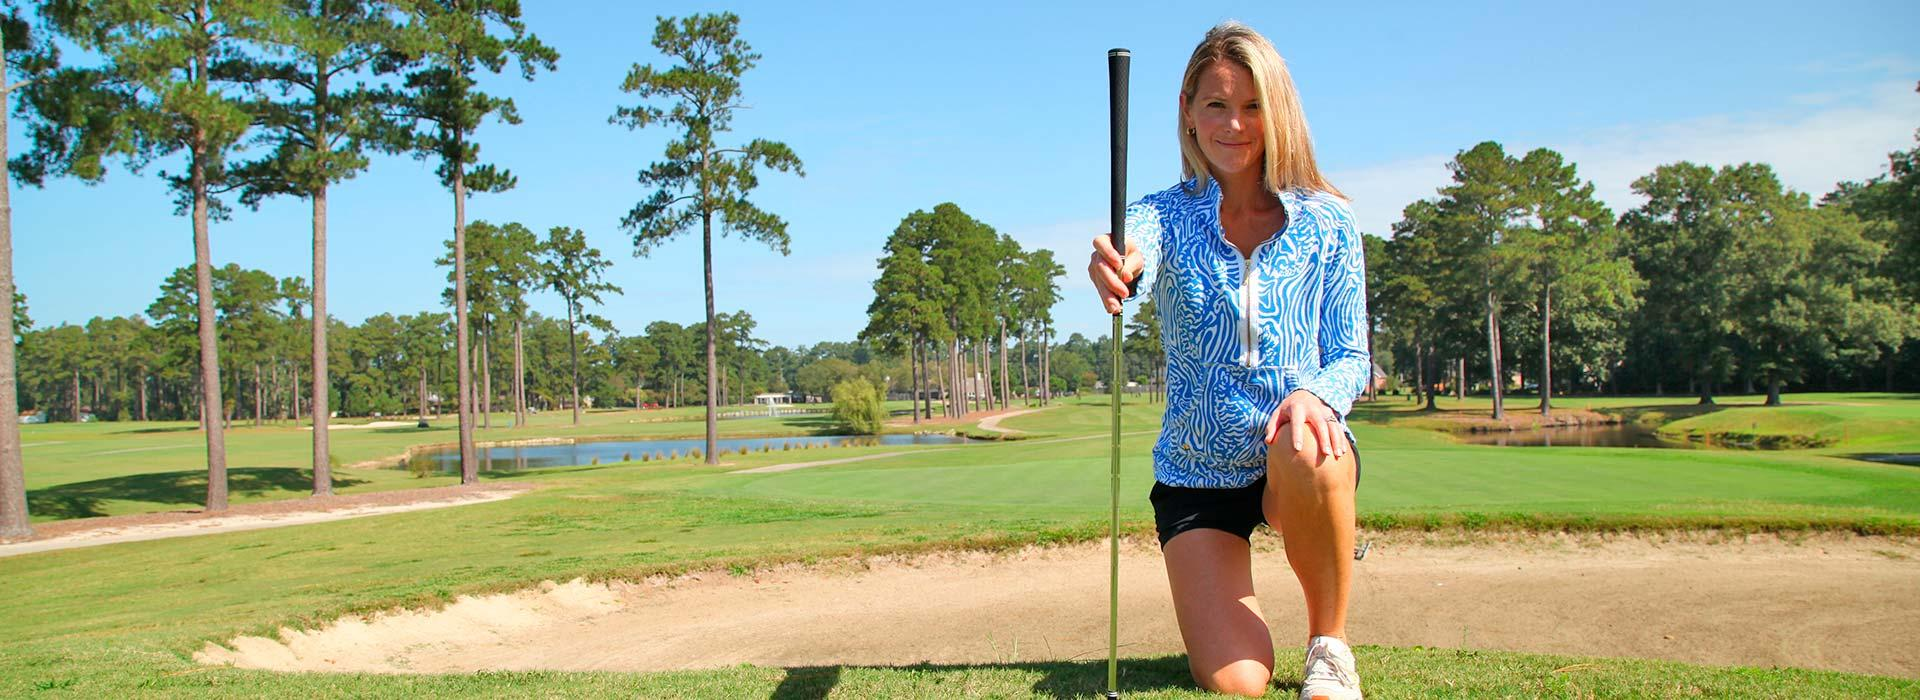 Female golfer posing with club at YMCA of the Pines golf course in Elizabeth City, NC